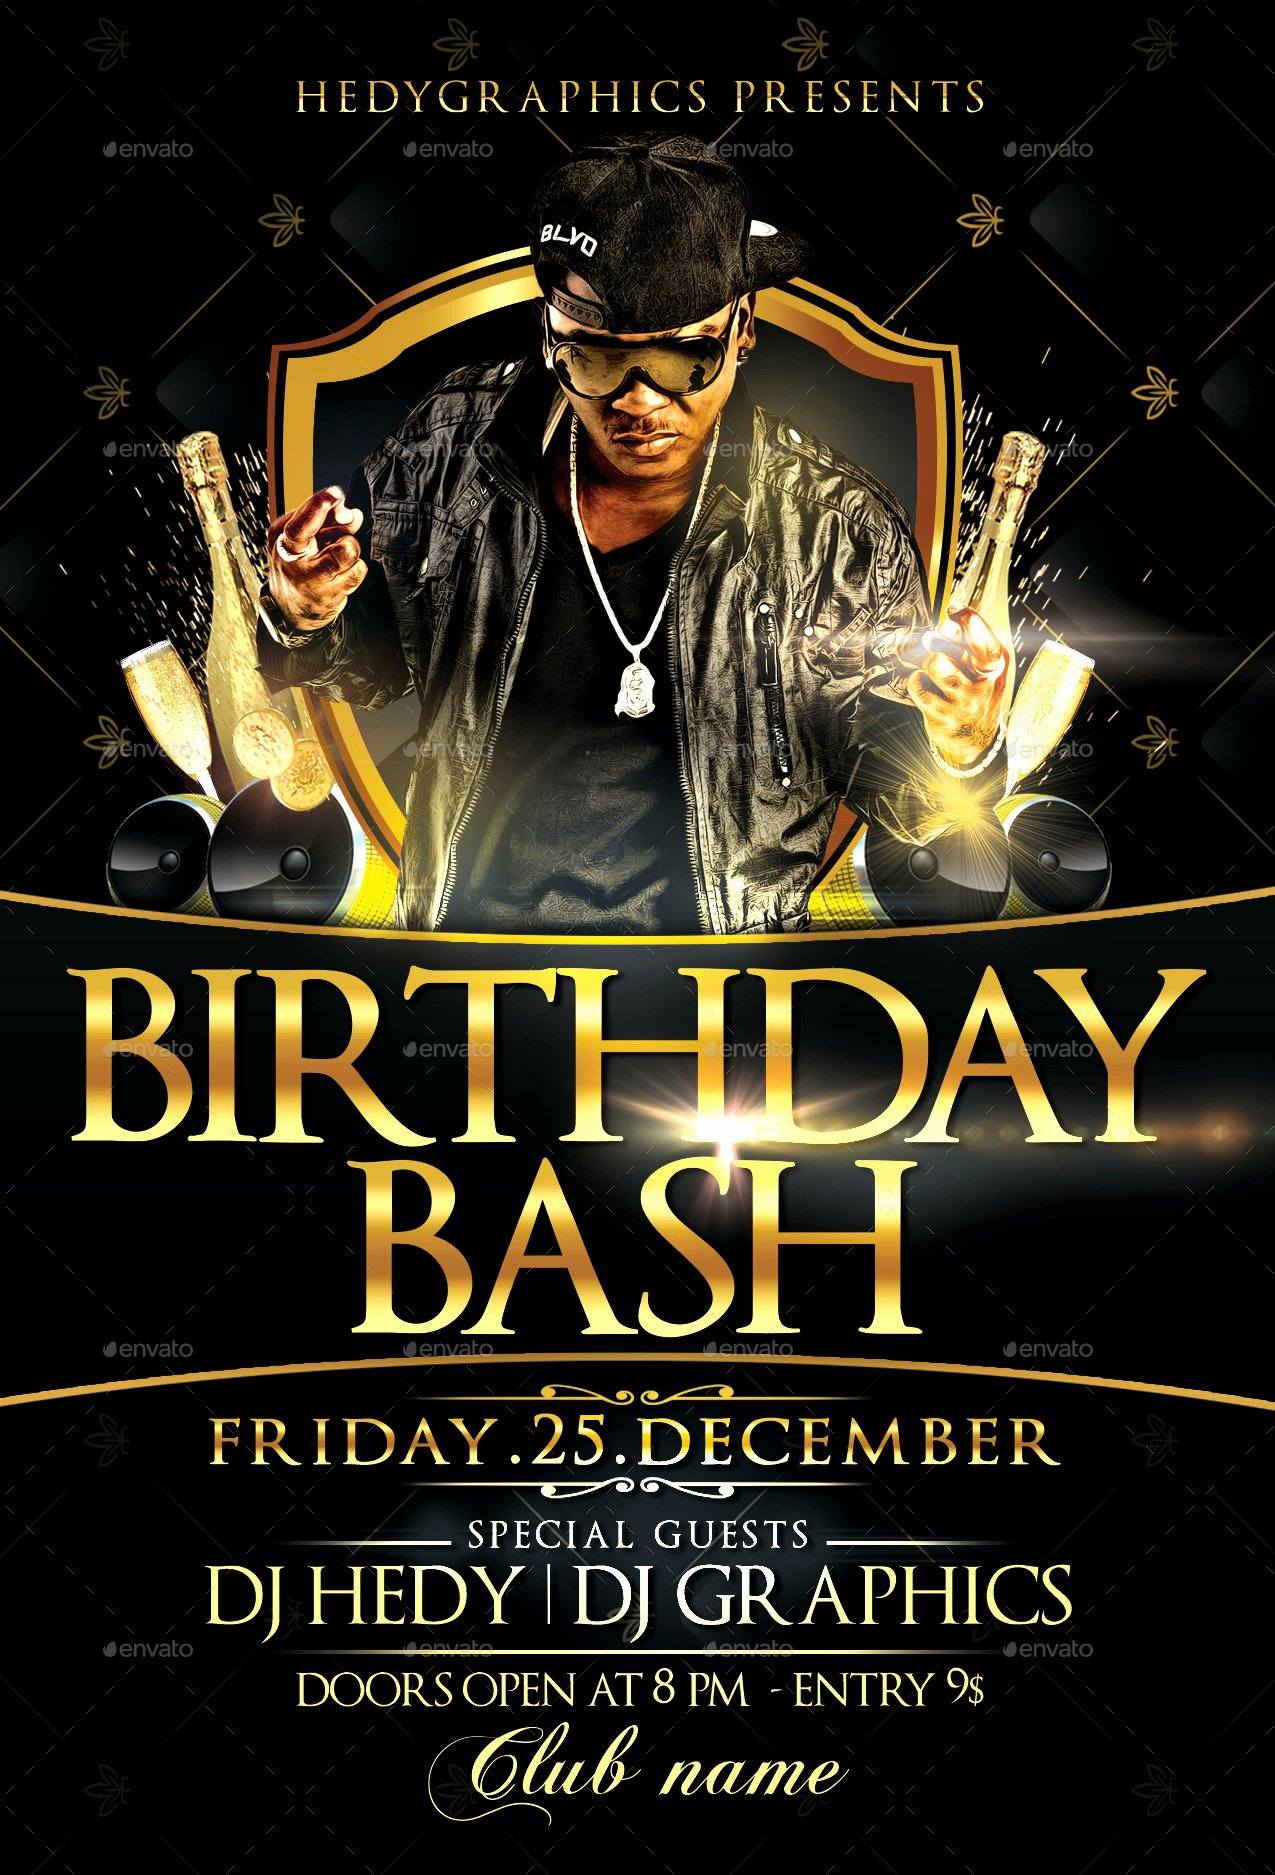 Birthday Bash Flyer Template by Hedygraphics with